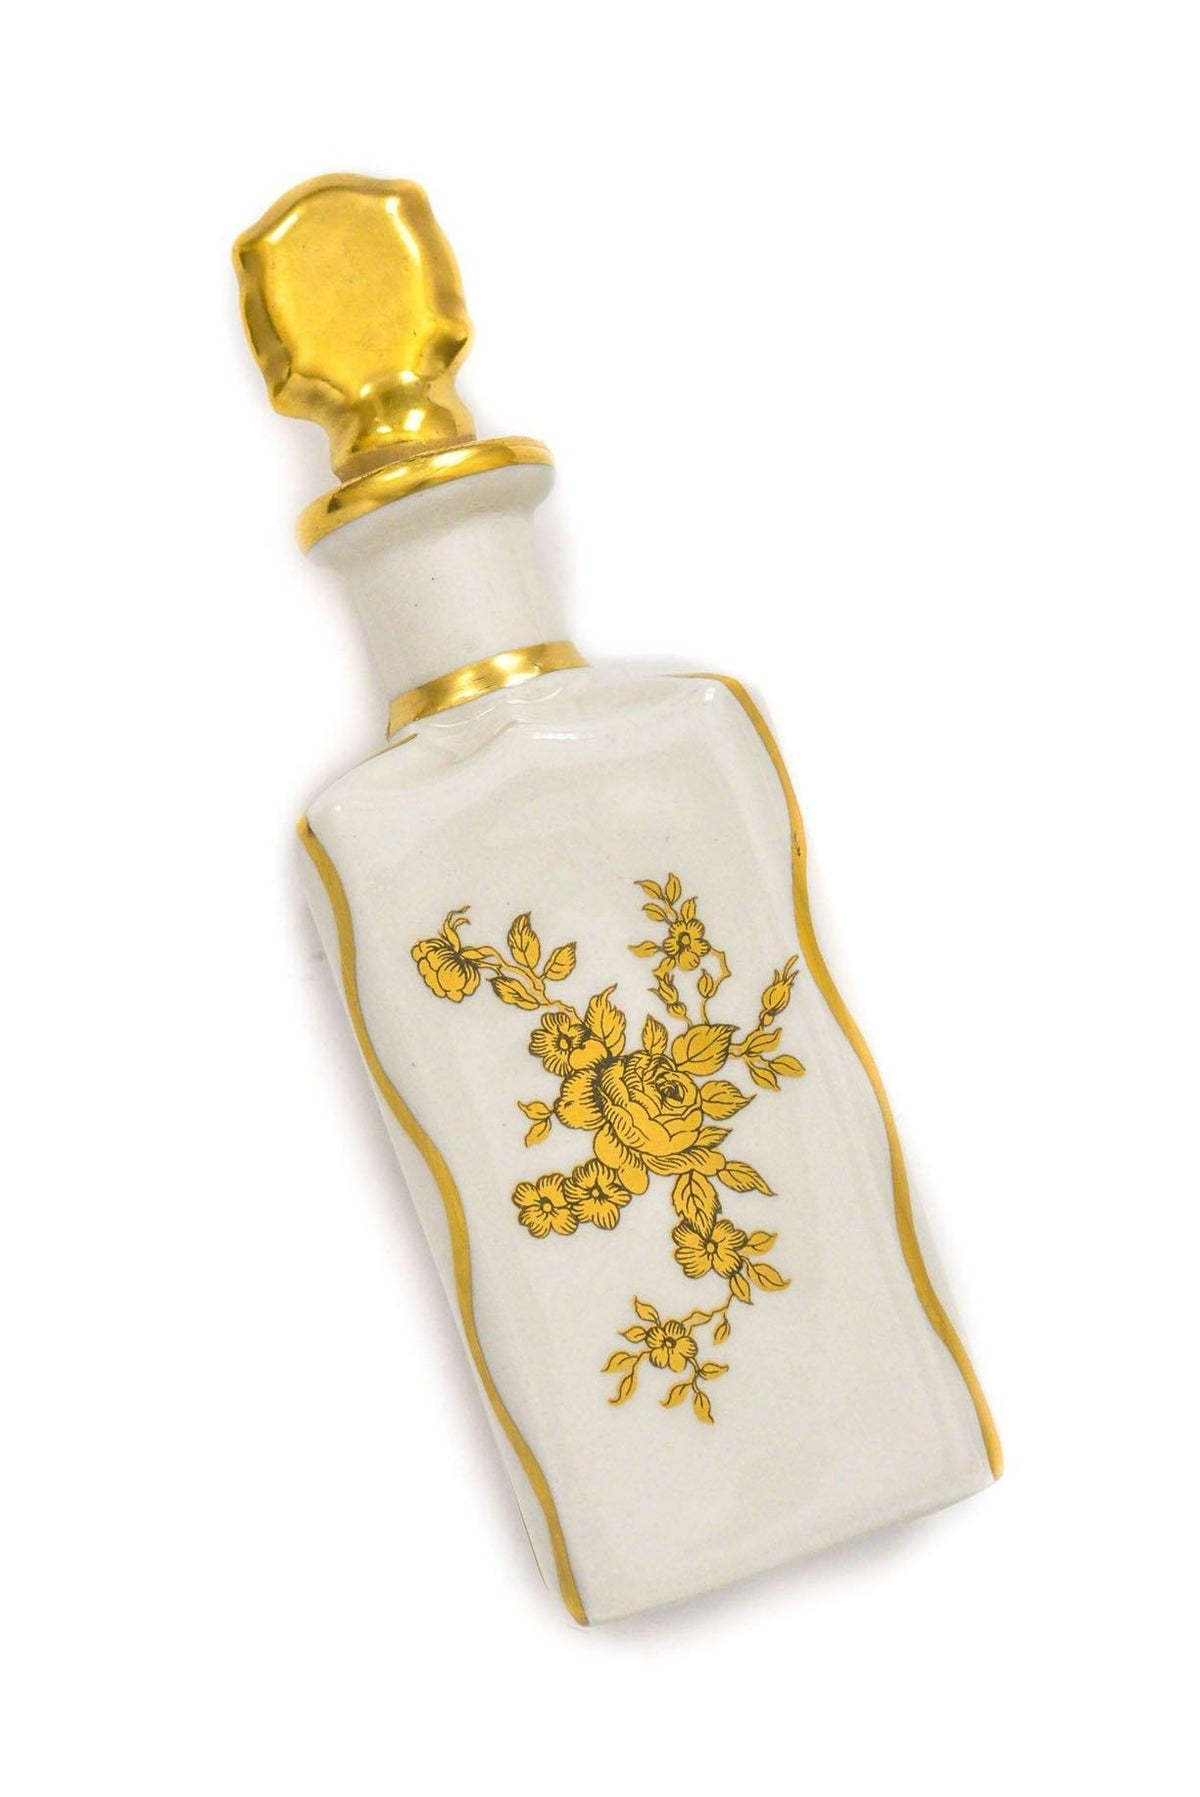 Vintage White and Gold Floral Perfume Bottle from Sweet and Spark